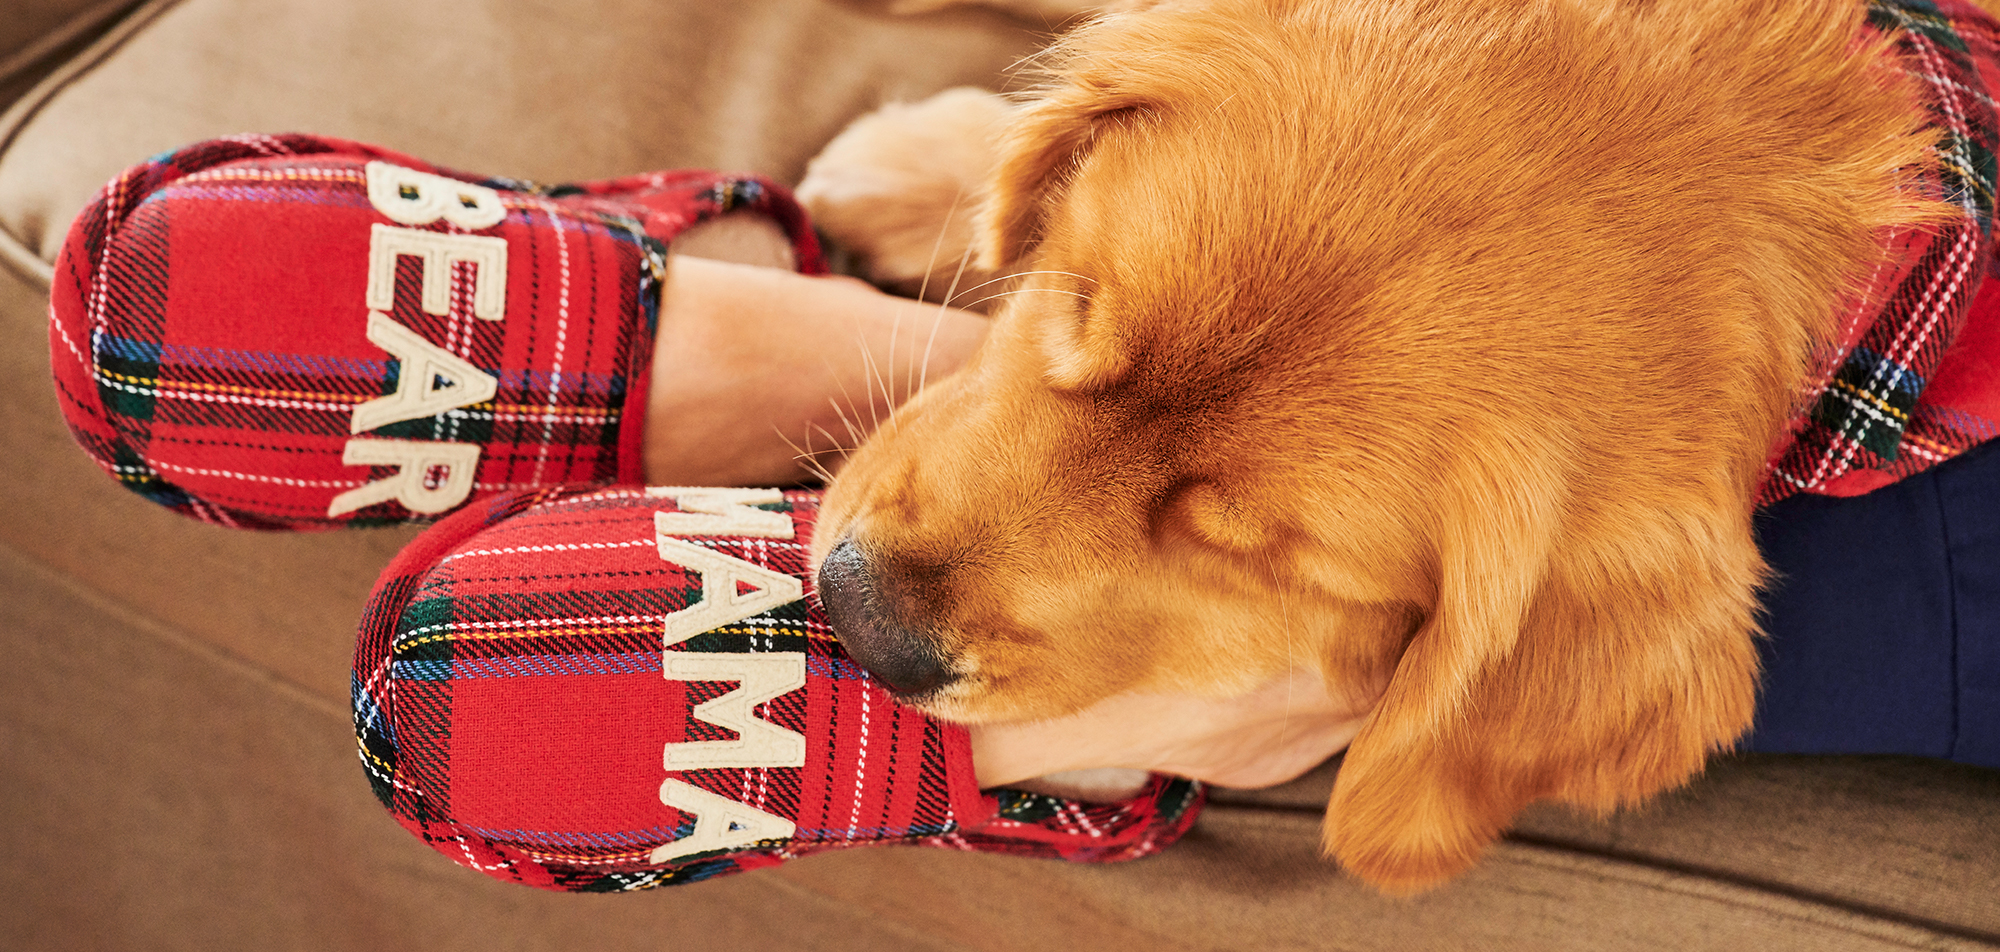 A dog resting his head on a pair of feet wearing mama bear slippers